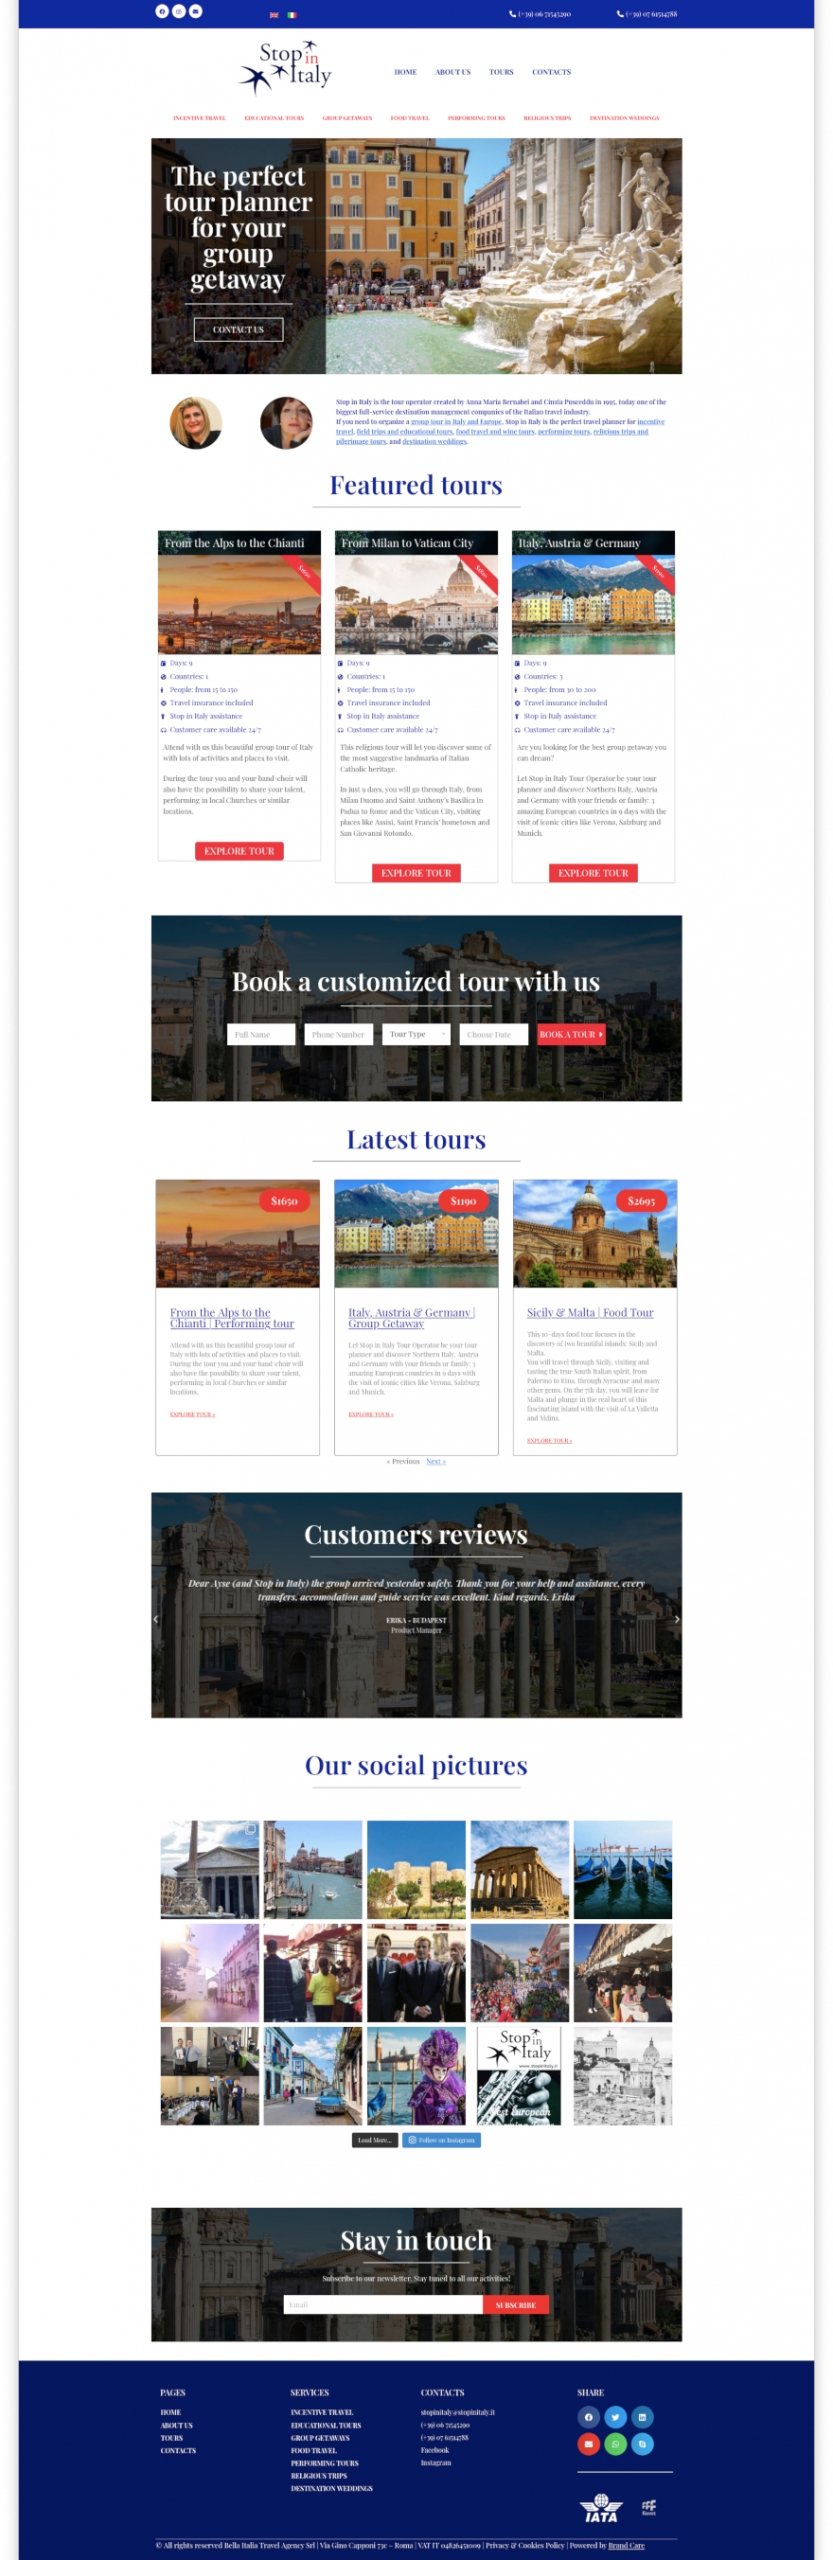 Stop in Italy - website